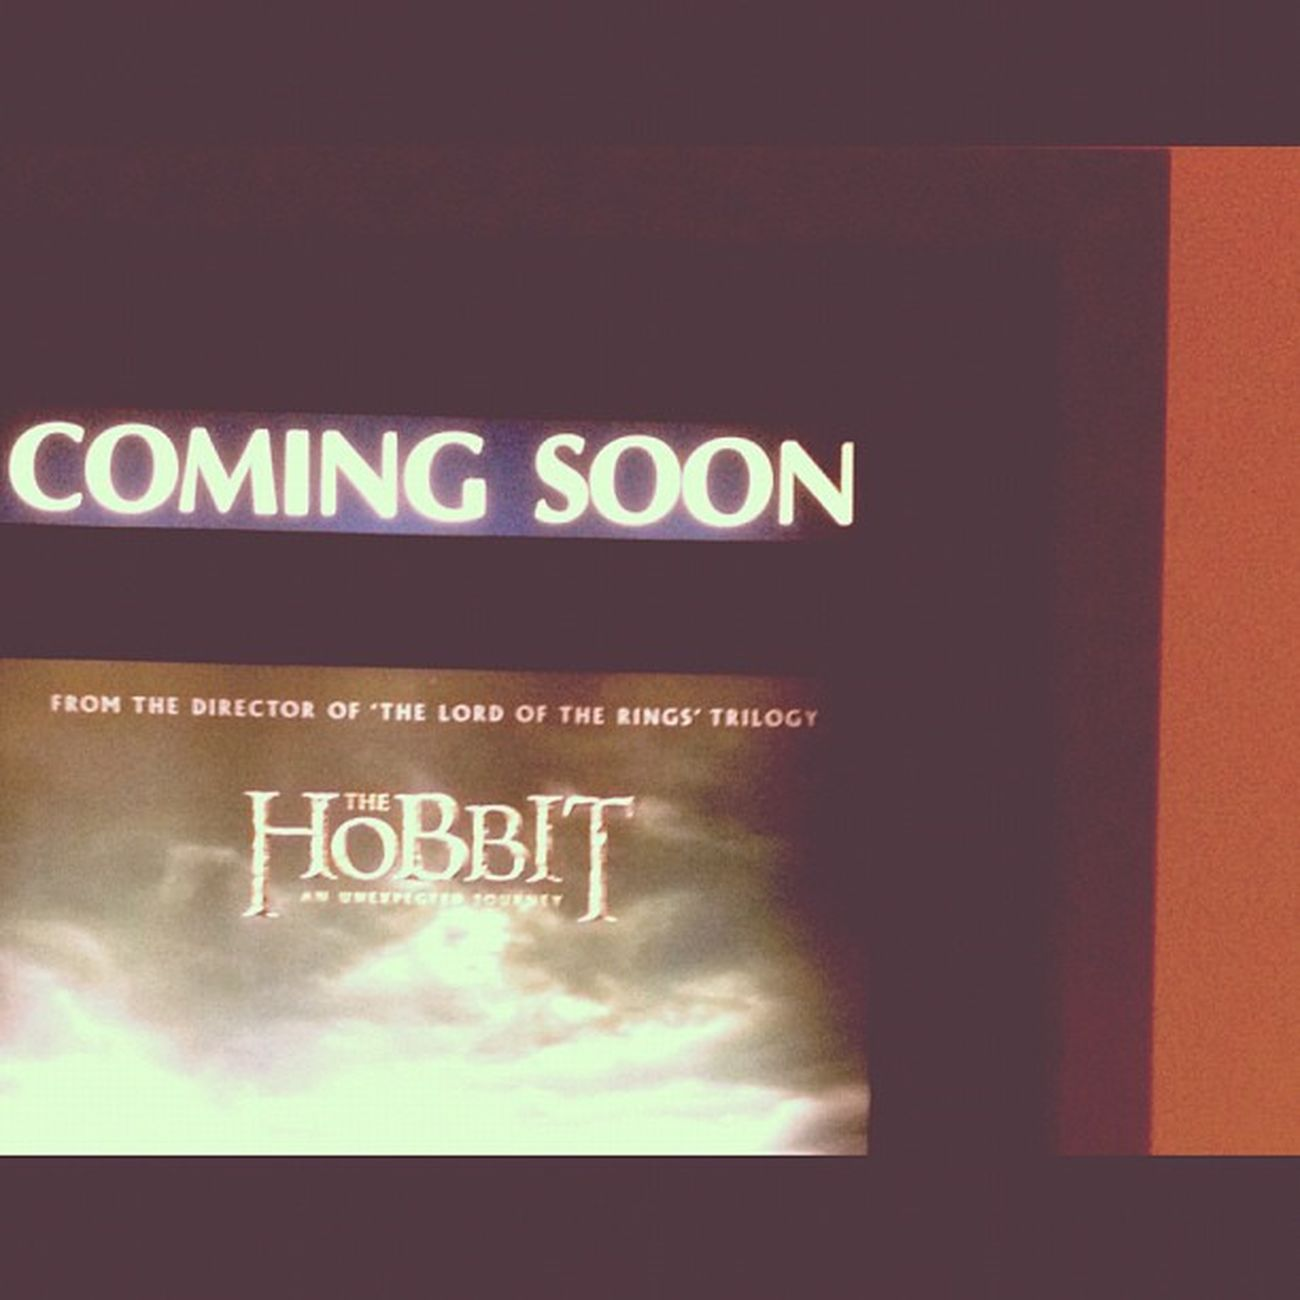 I'm legolas waiting !!! 😏TheHobbit Peterjackson Lordofthering Hollywood MOVIE Epic Bangkok Thailand